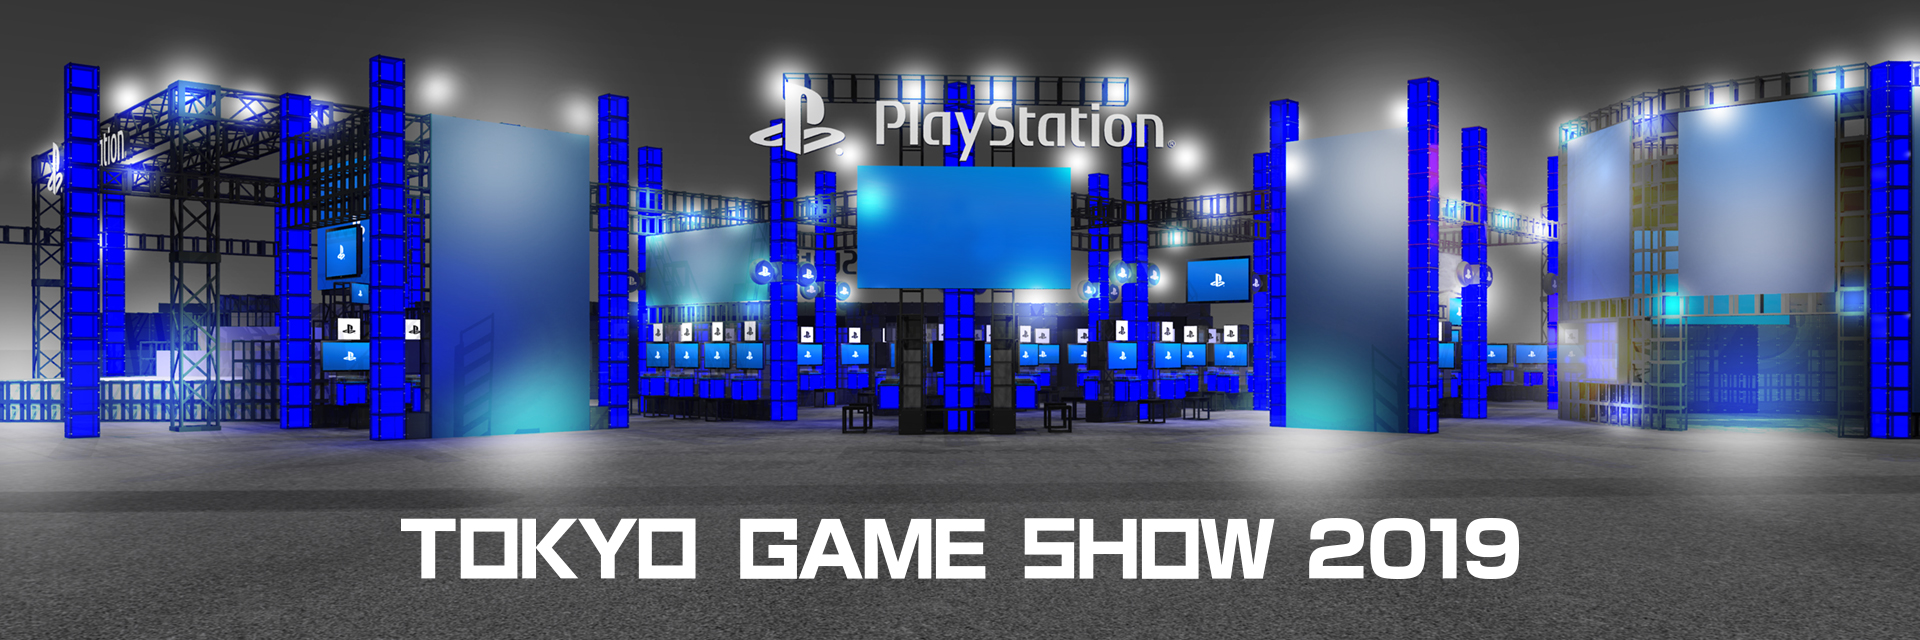 "tgs2019 mainvisual pc - ソニー、TGS2019の内容を公開!『PlayStation presents LIVE SHOW ""TGS2019""』も配信予定"